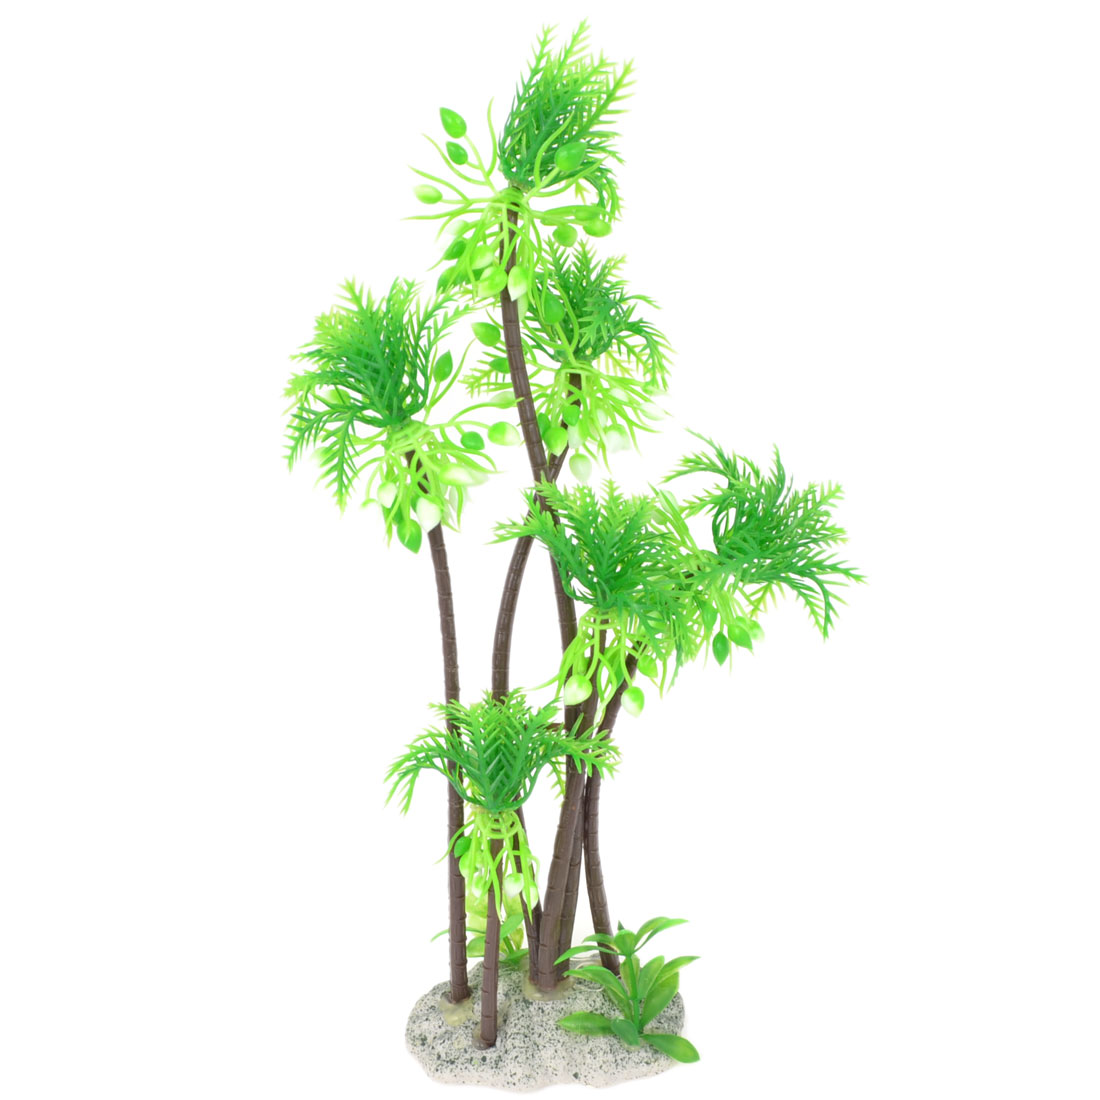 "Green Plastic Ceramic Base Emulation Underwater Plant Grass Tree 11"" Height for Fish Tank"